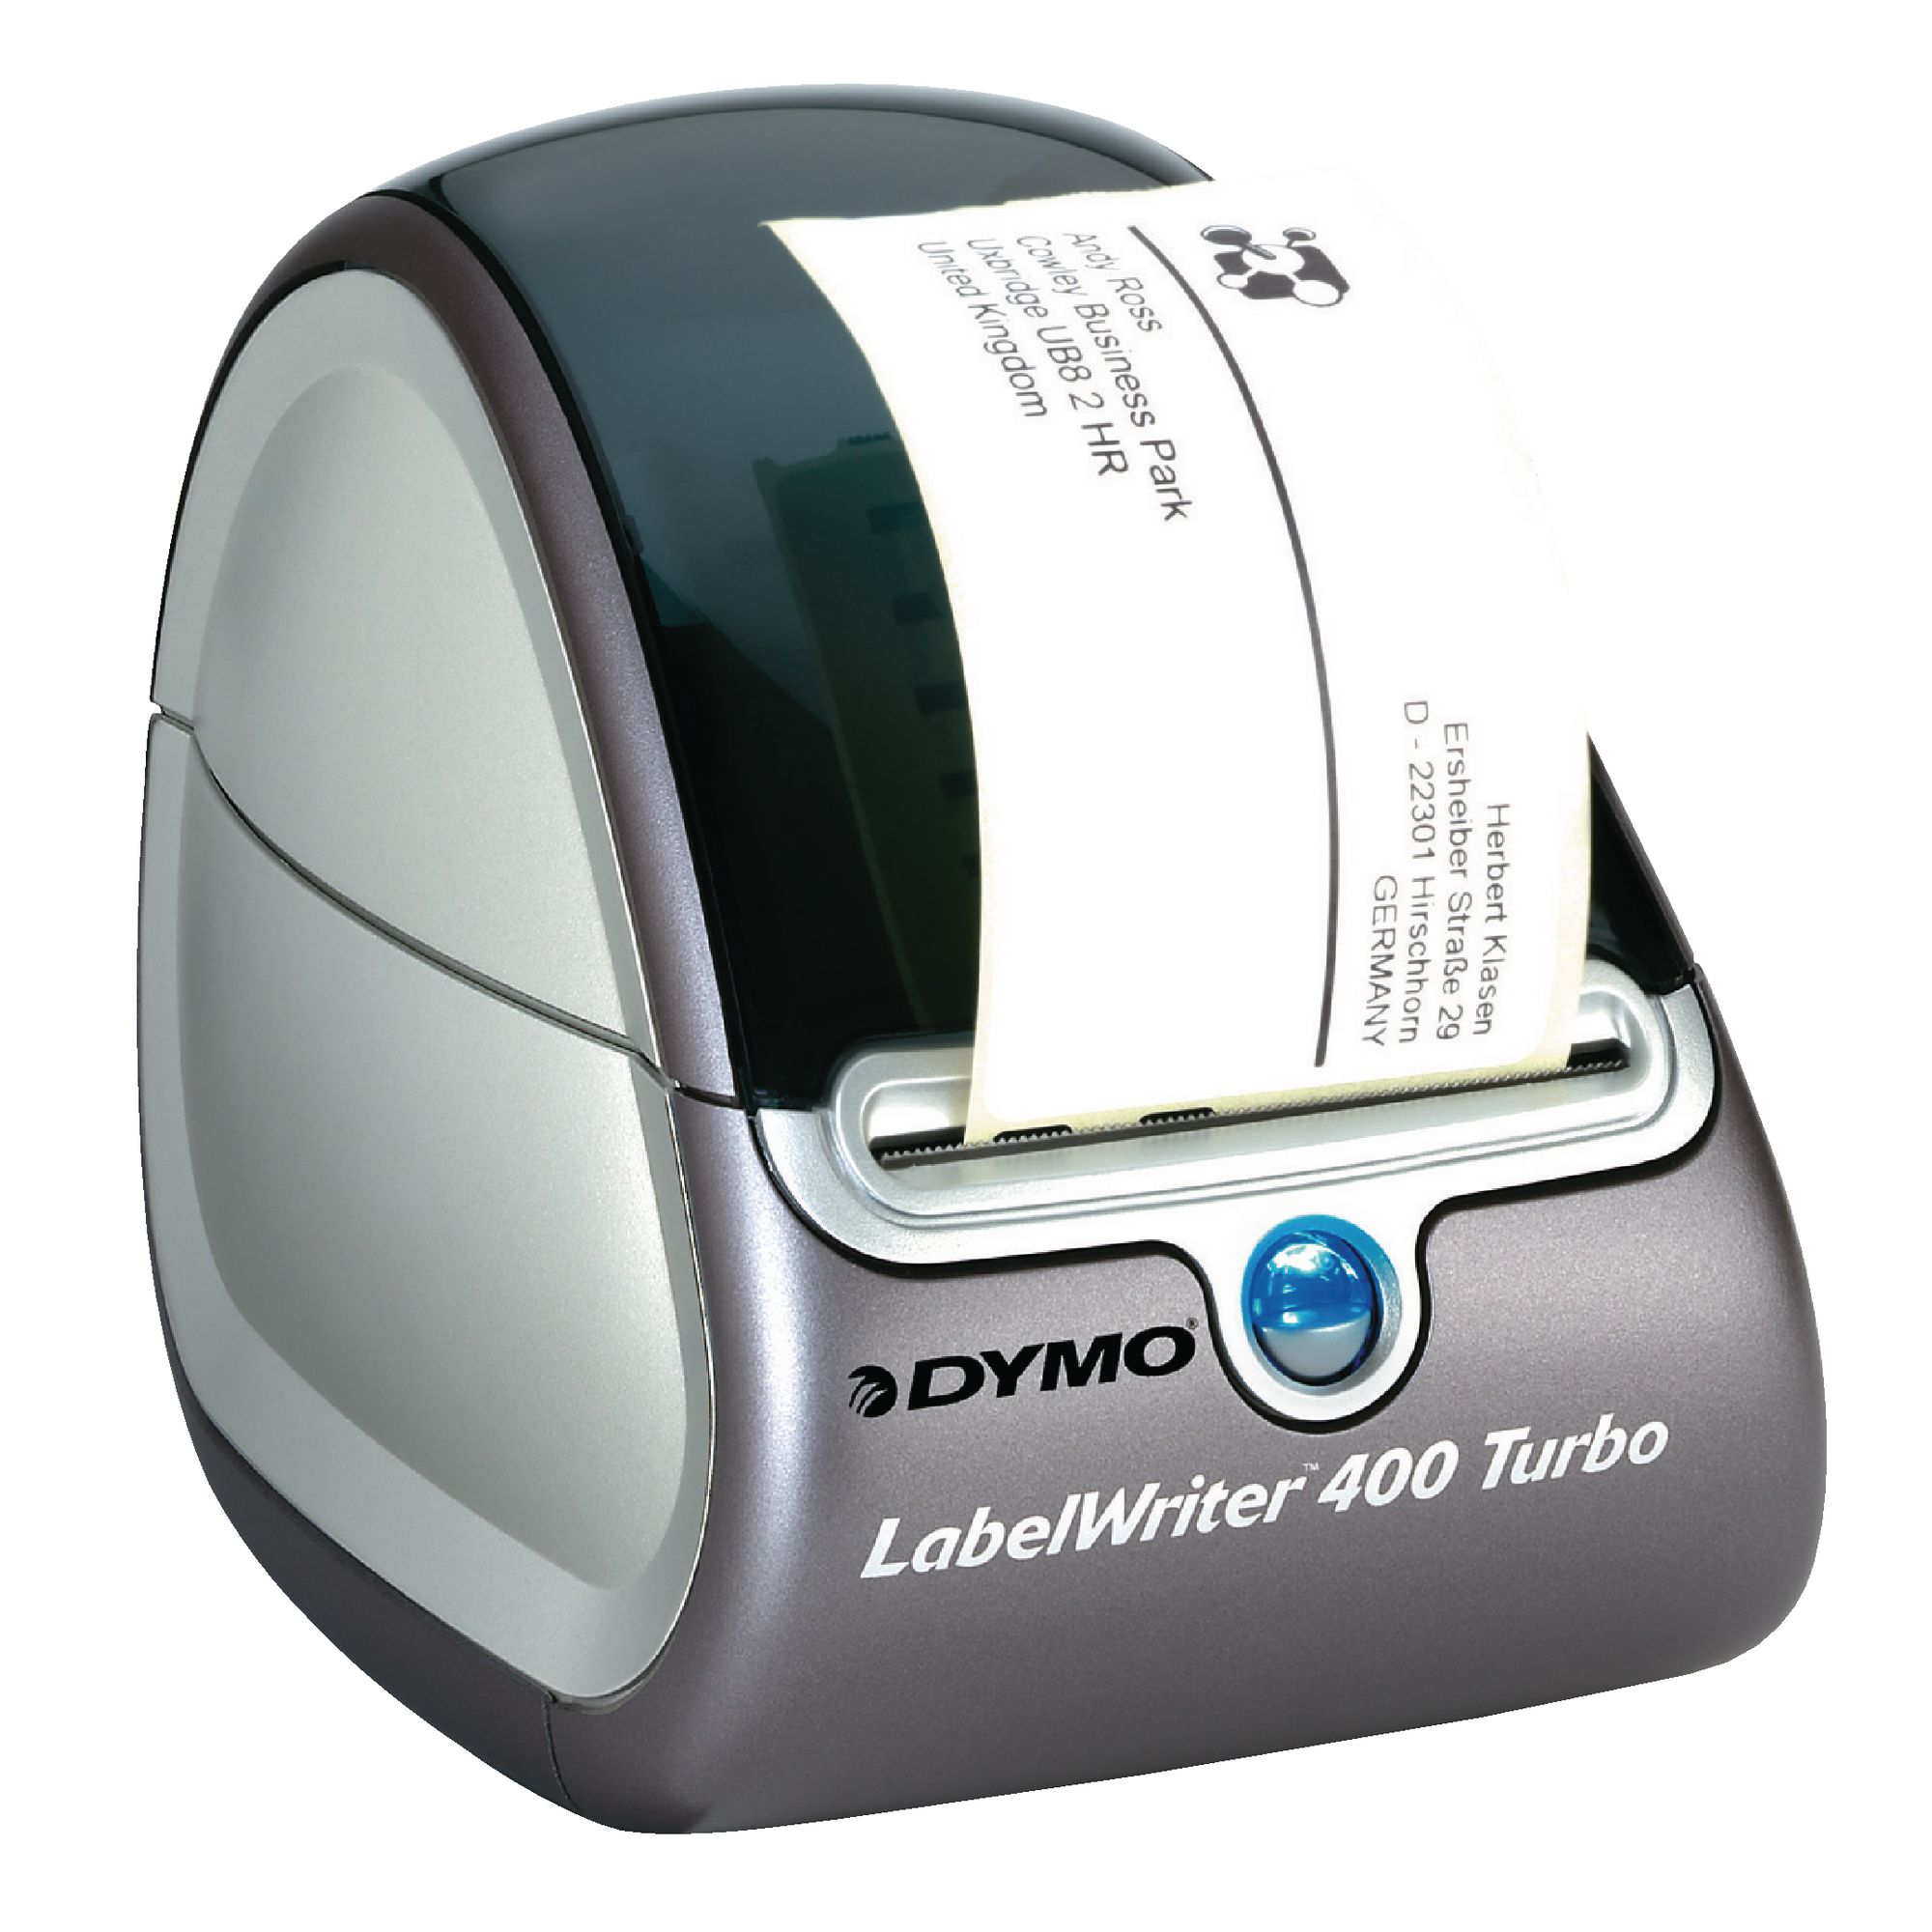 DYMO LABEL PRINTER 450 TURBO DRIVERS WINDOWS 7